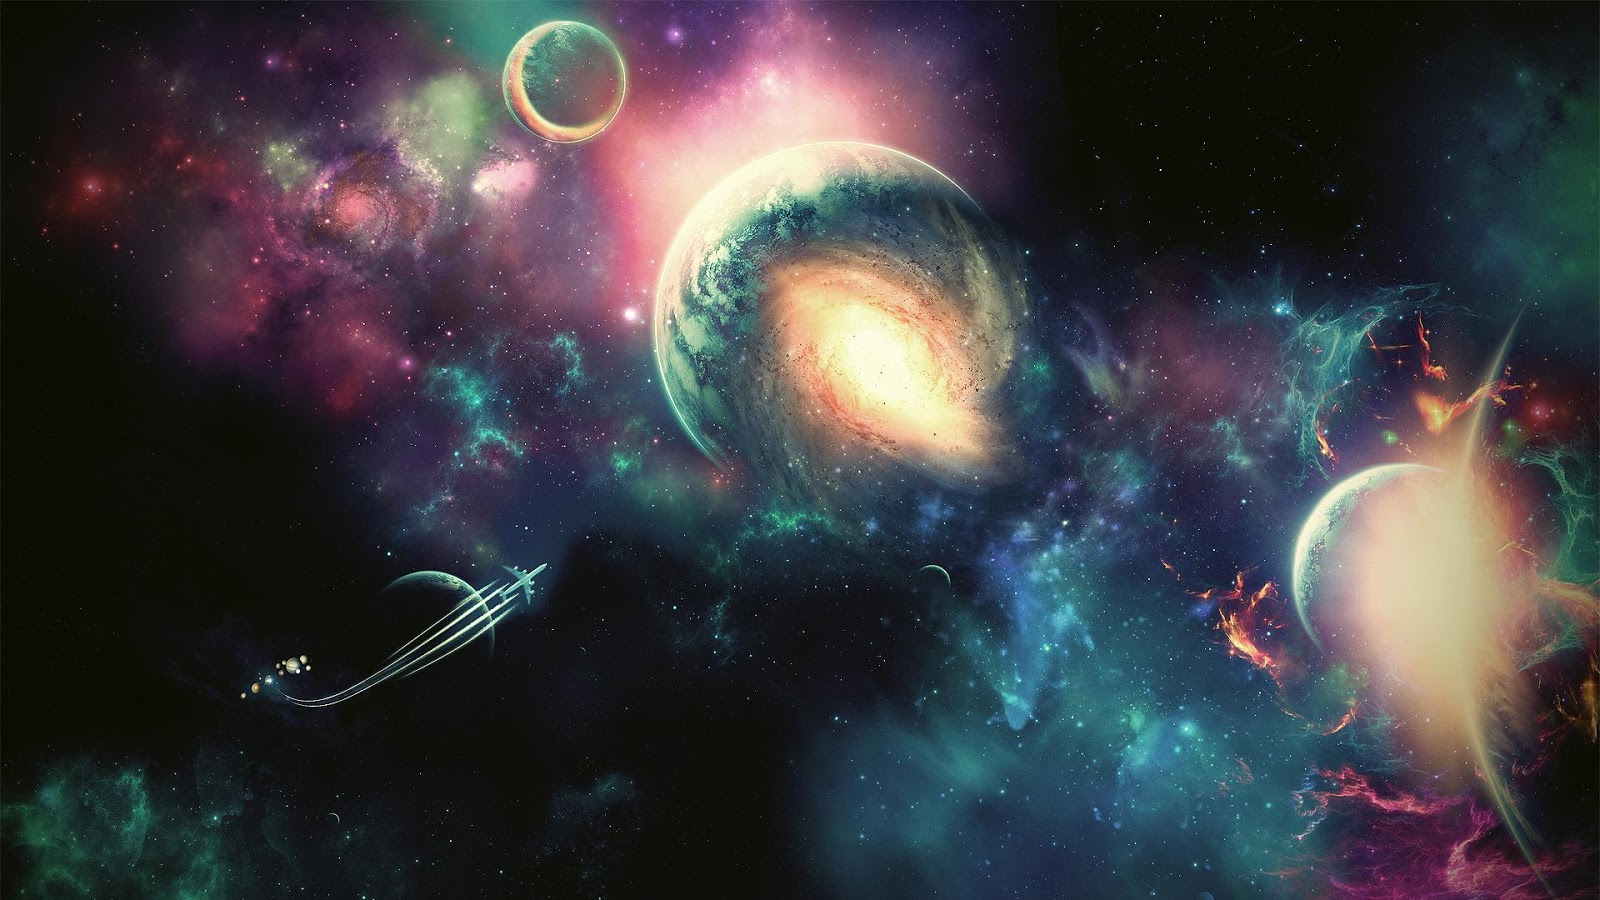 space sci fi full hd desktop wallpapers 1080p